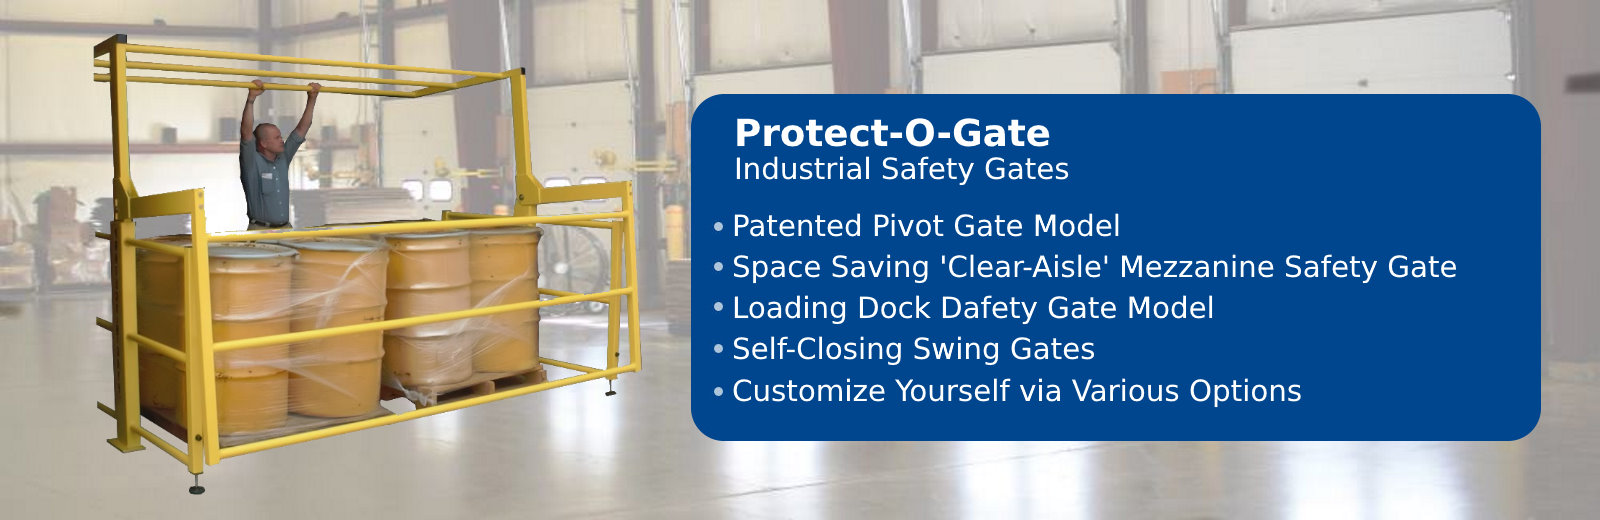 Industrial Safety Gates by Benko Products